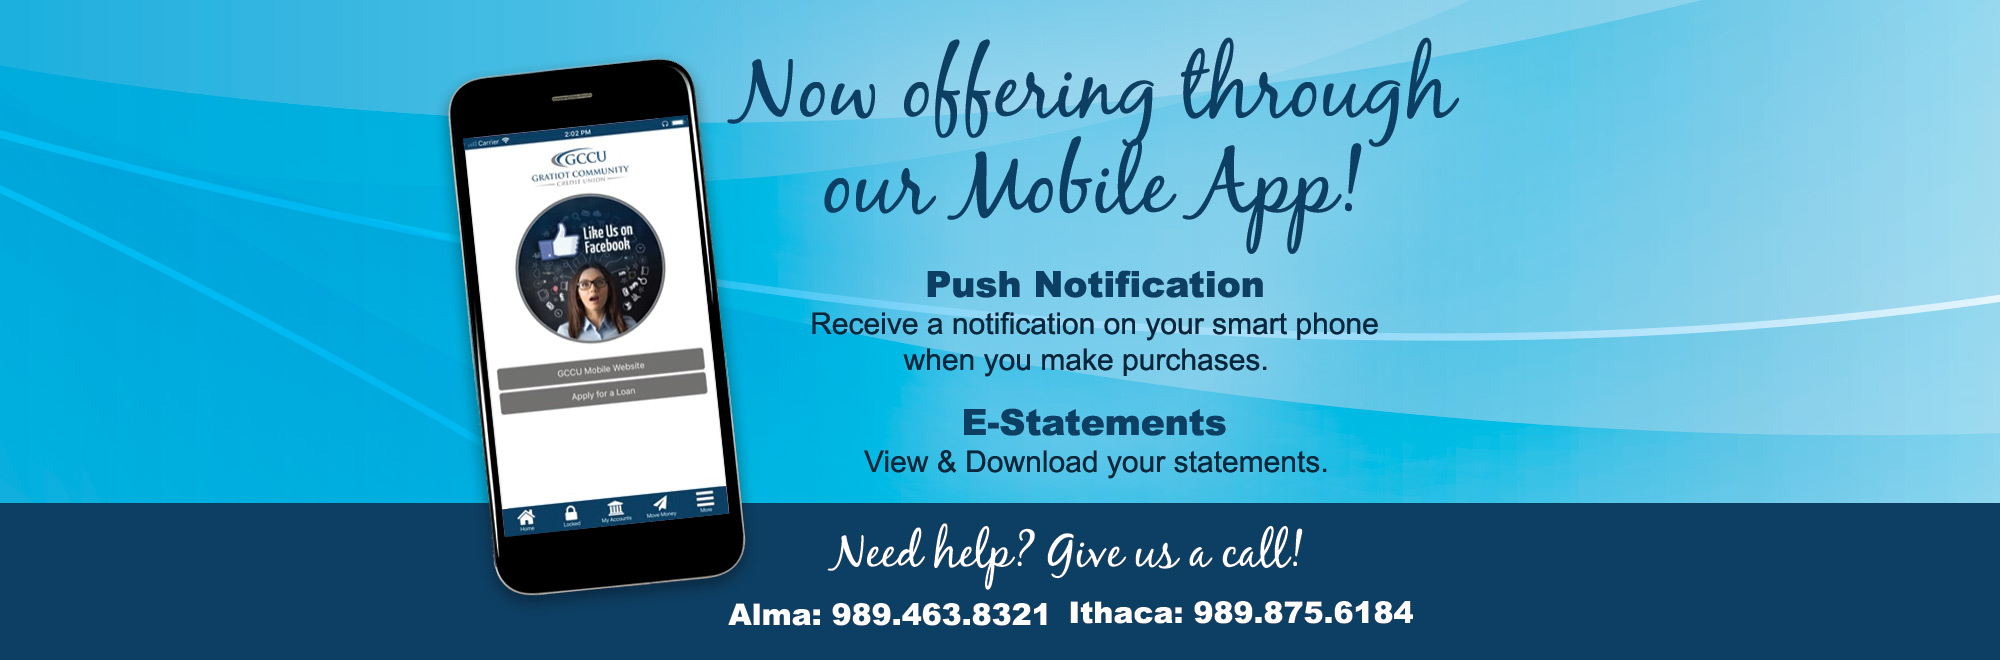 Promotion on our mobile app highlighting push notifications and e-Statements.